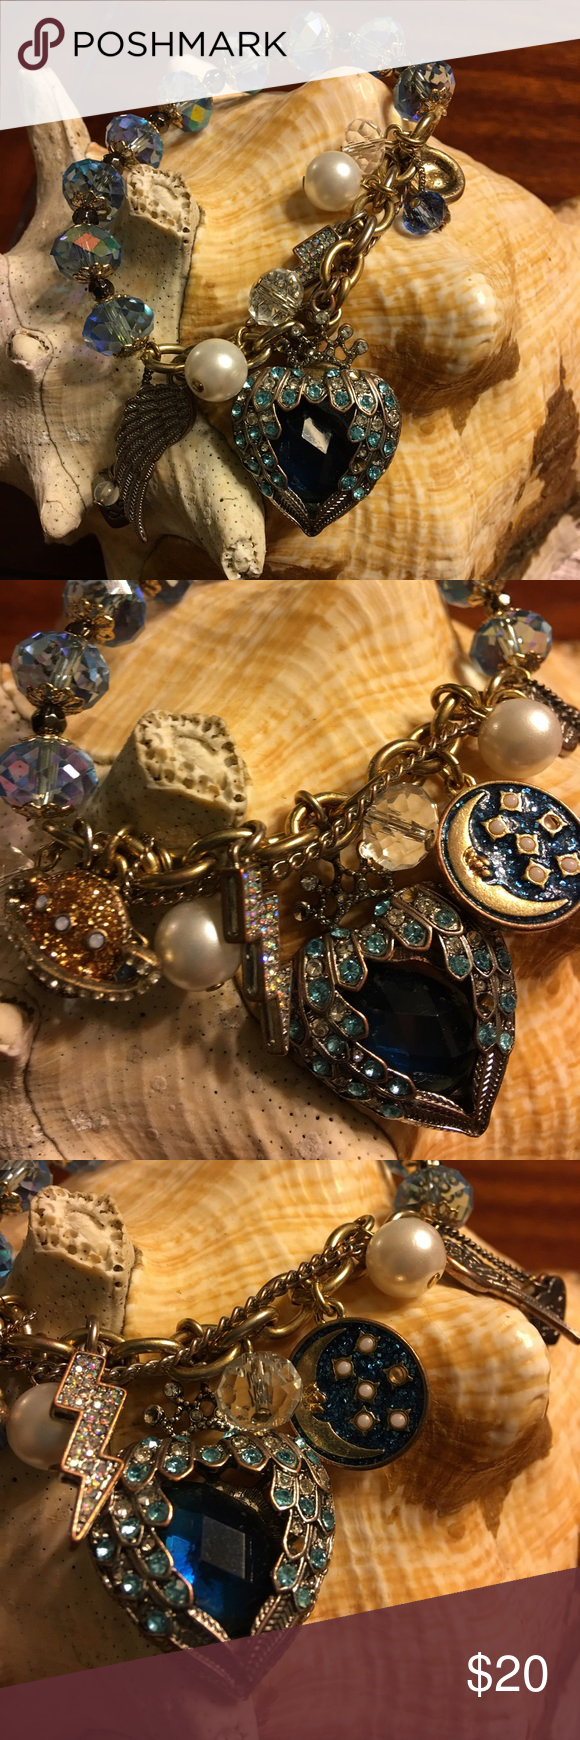 Betsey Johnson Blue Heart and Wings Bracelet Gorgeous charm bracelet by Betsey Johnson. Gold bracelet with blue beads, lightening bolt, moon, stars, wing and pearl charms. Listed matching necklace Betsey Johnson Jewelry Bracelets